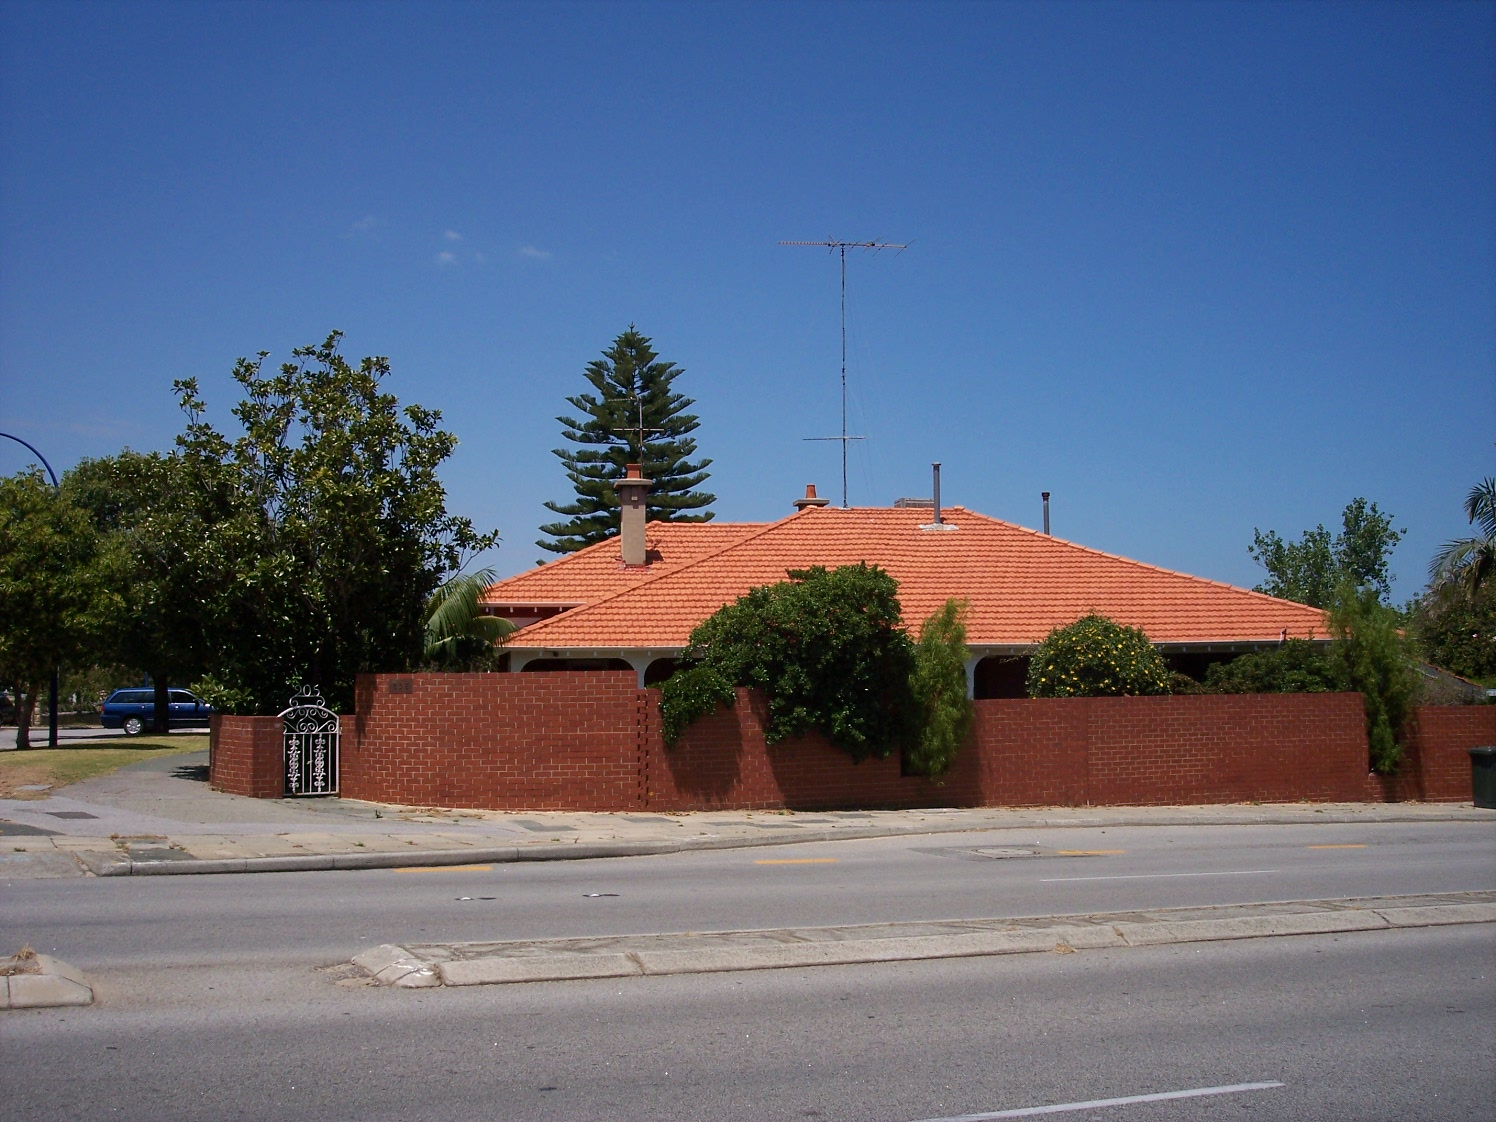 31-10-06 View S 205 Canning Highway.jpg